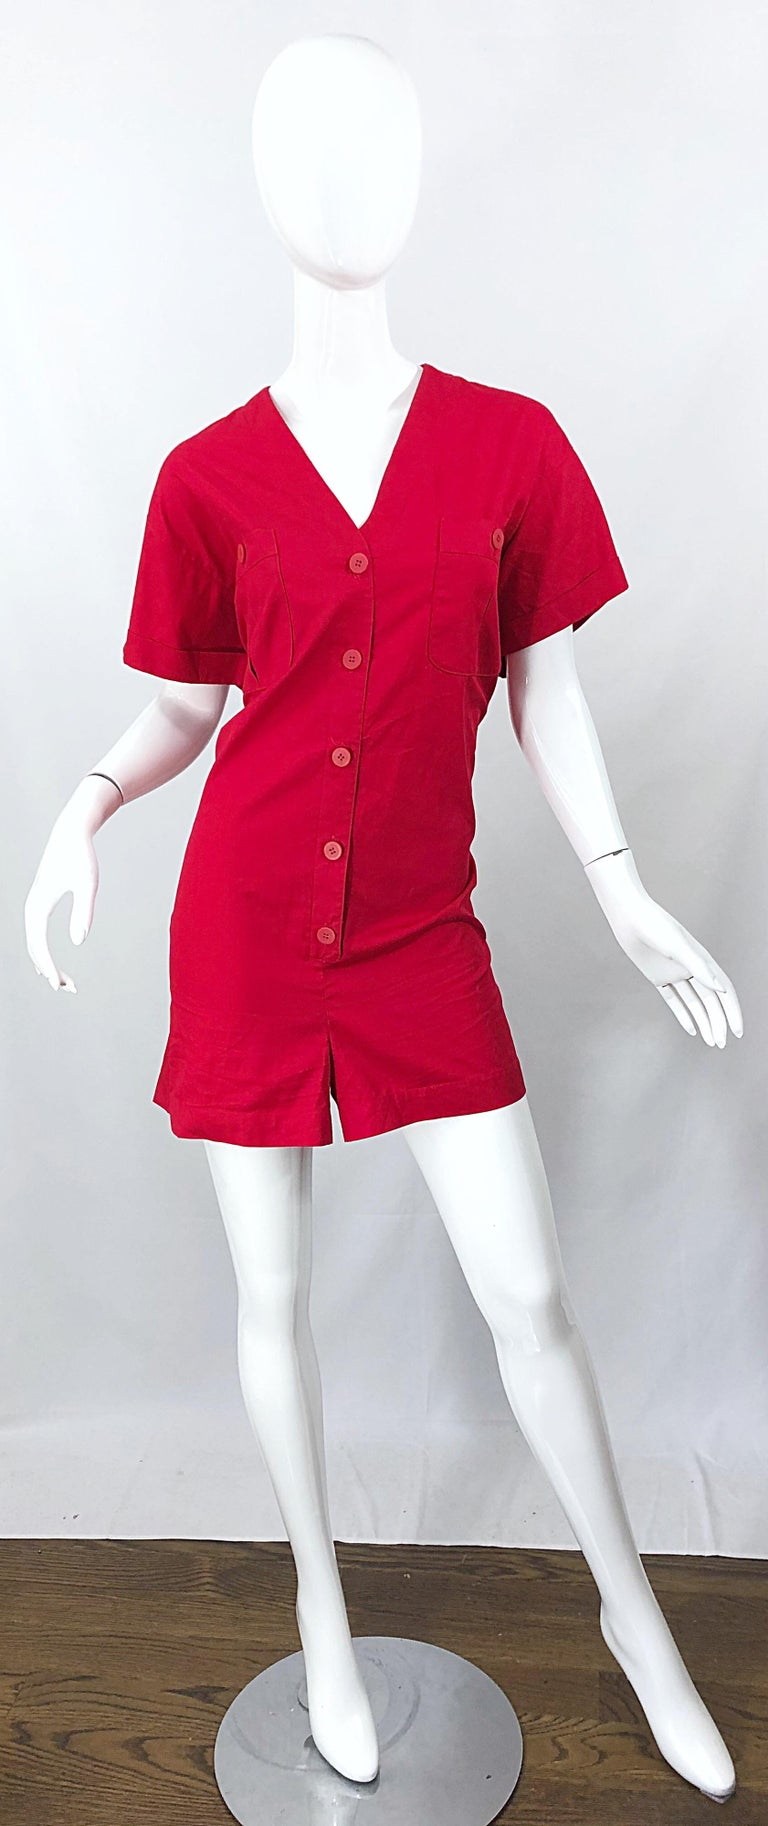 NWT Vintage Christian Dior Romper Size 14 Lipstick Red Cotton One Piece Jumpsuit For Sale 3